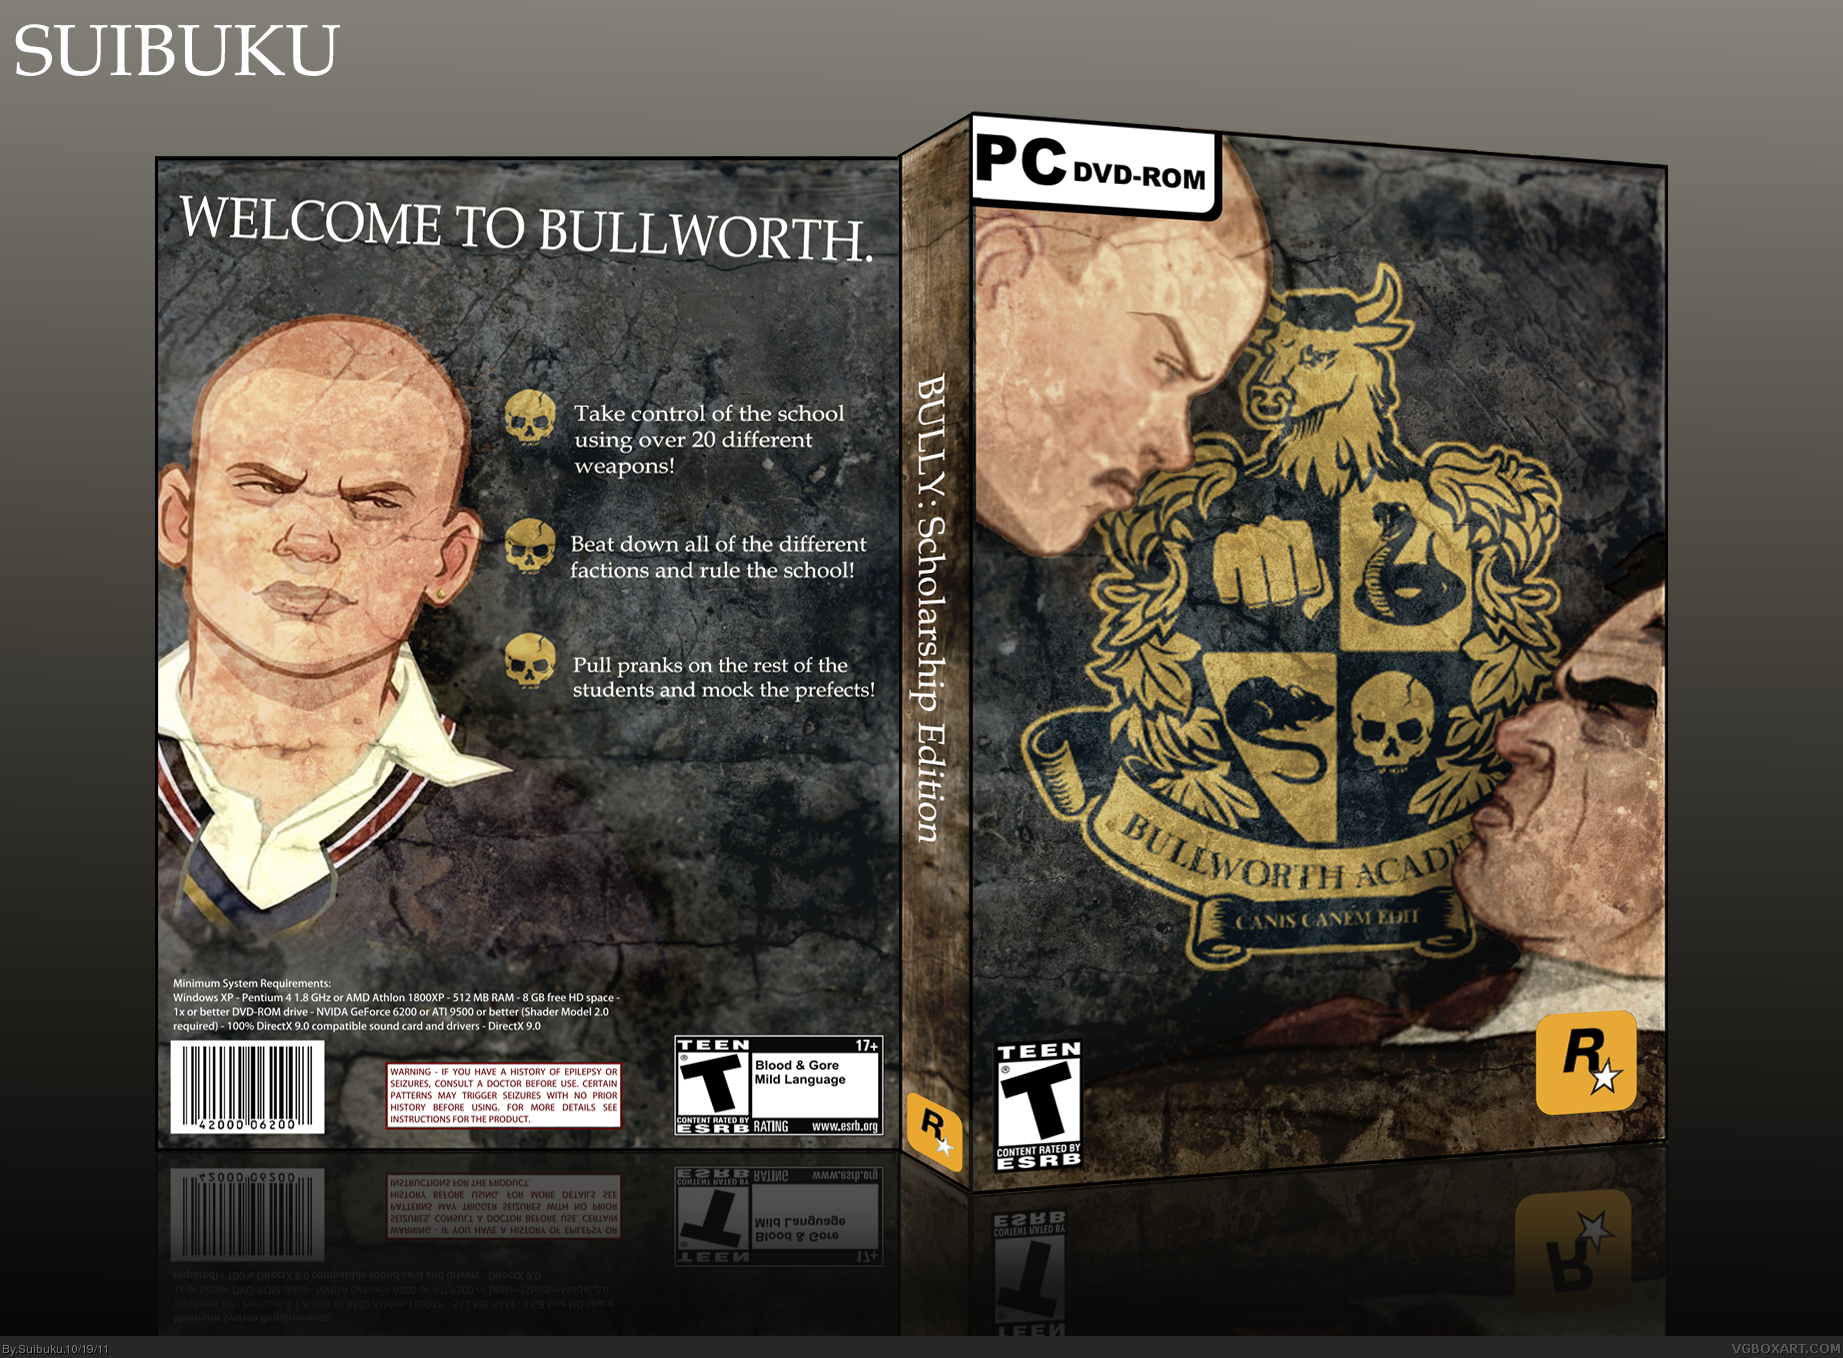 Bully: Scholarship Edition PC Box Art Cover by Suibuku